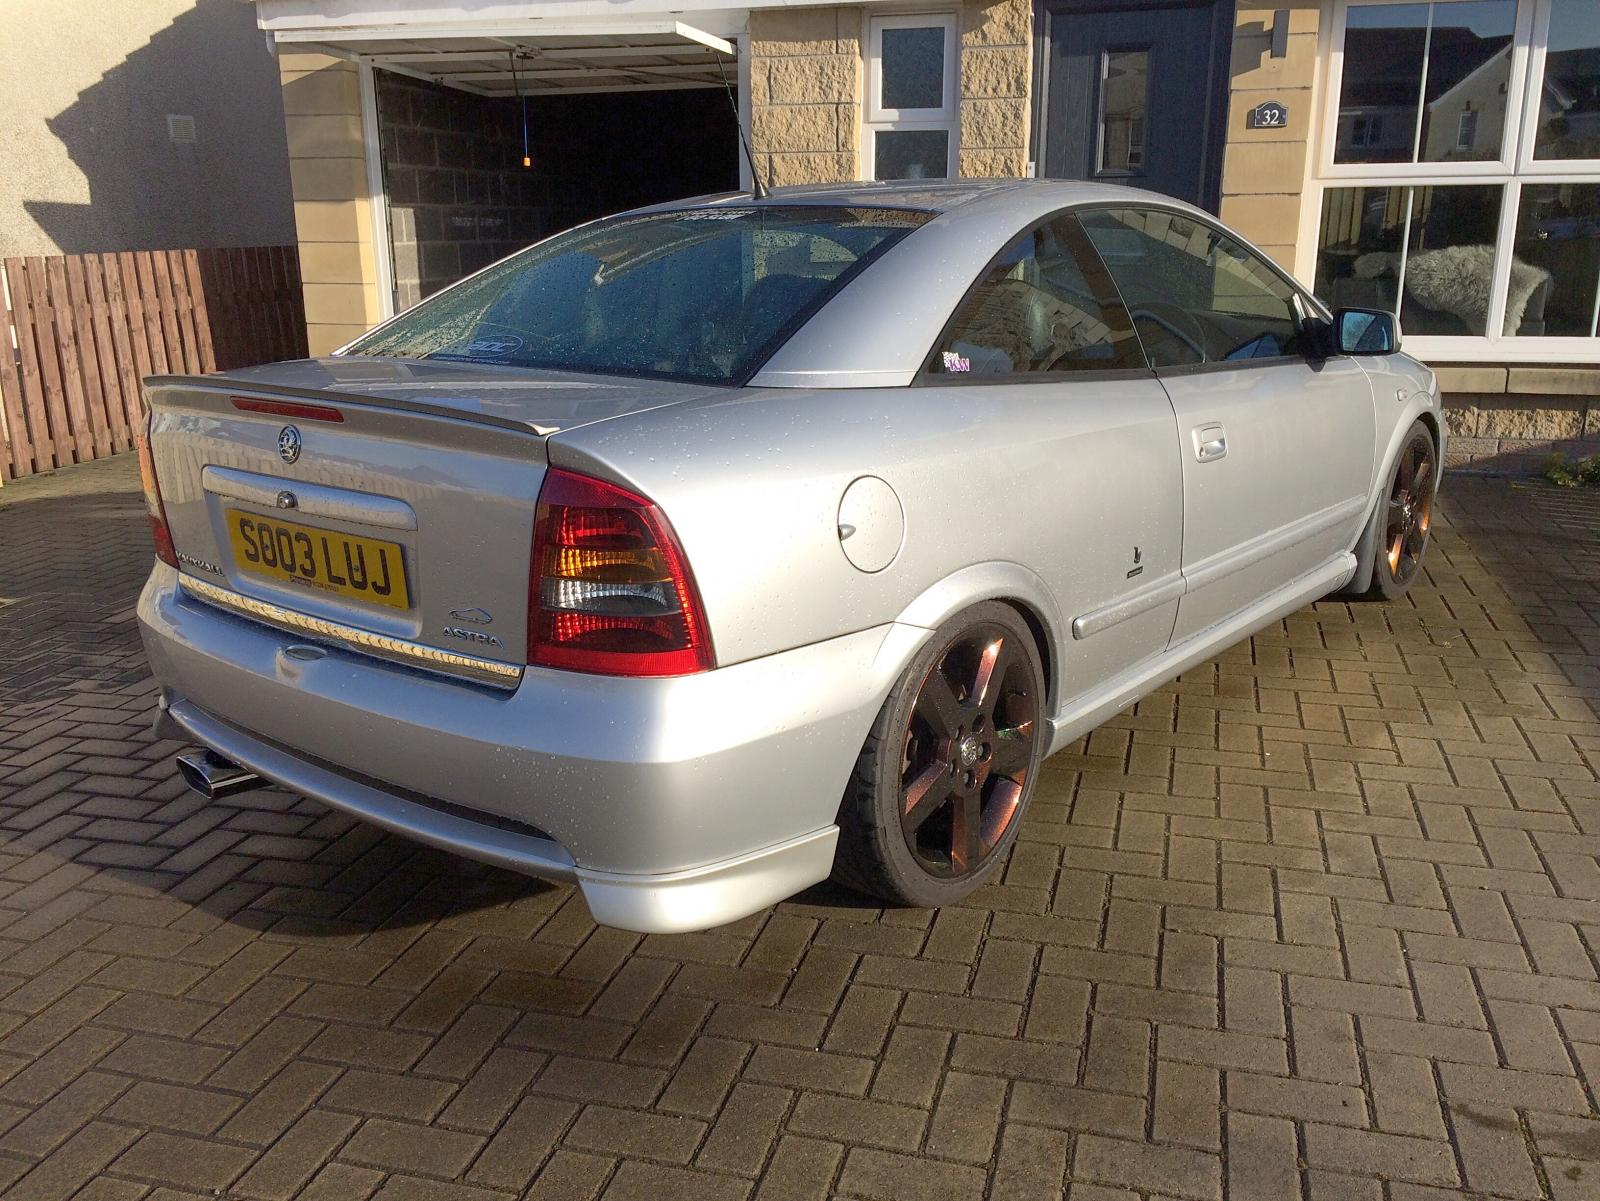 For Sale 2003 Vauxhall Astra Coupe 18 1000 Autoshite Turbo Fuse Box 20180603 115811 2018 08 03 07 24 47